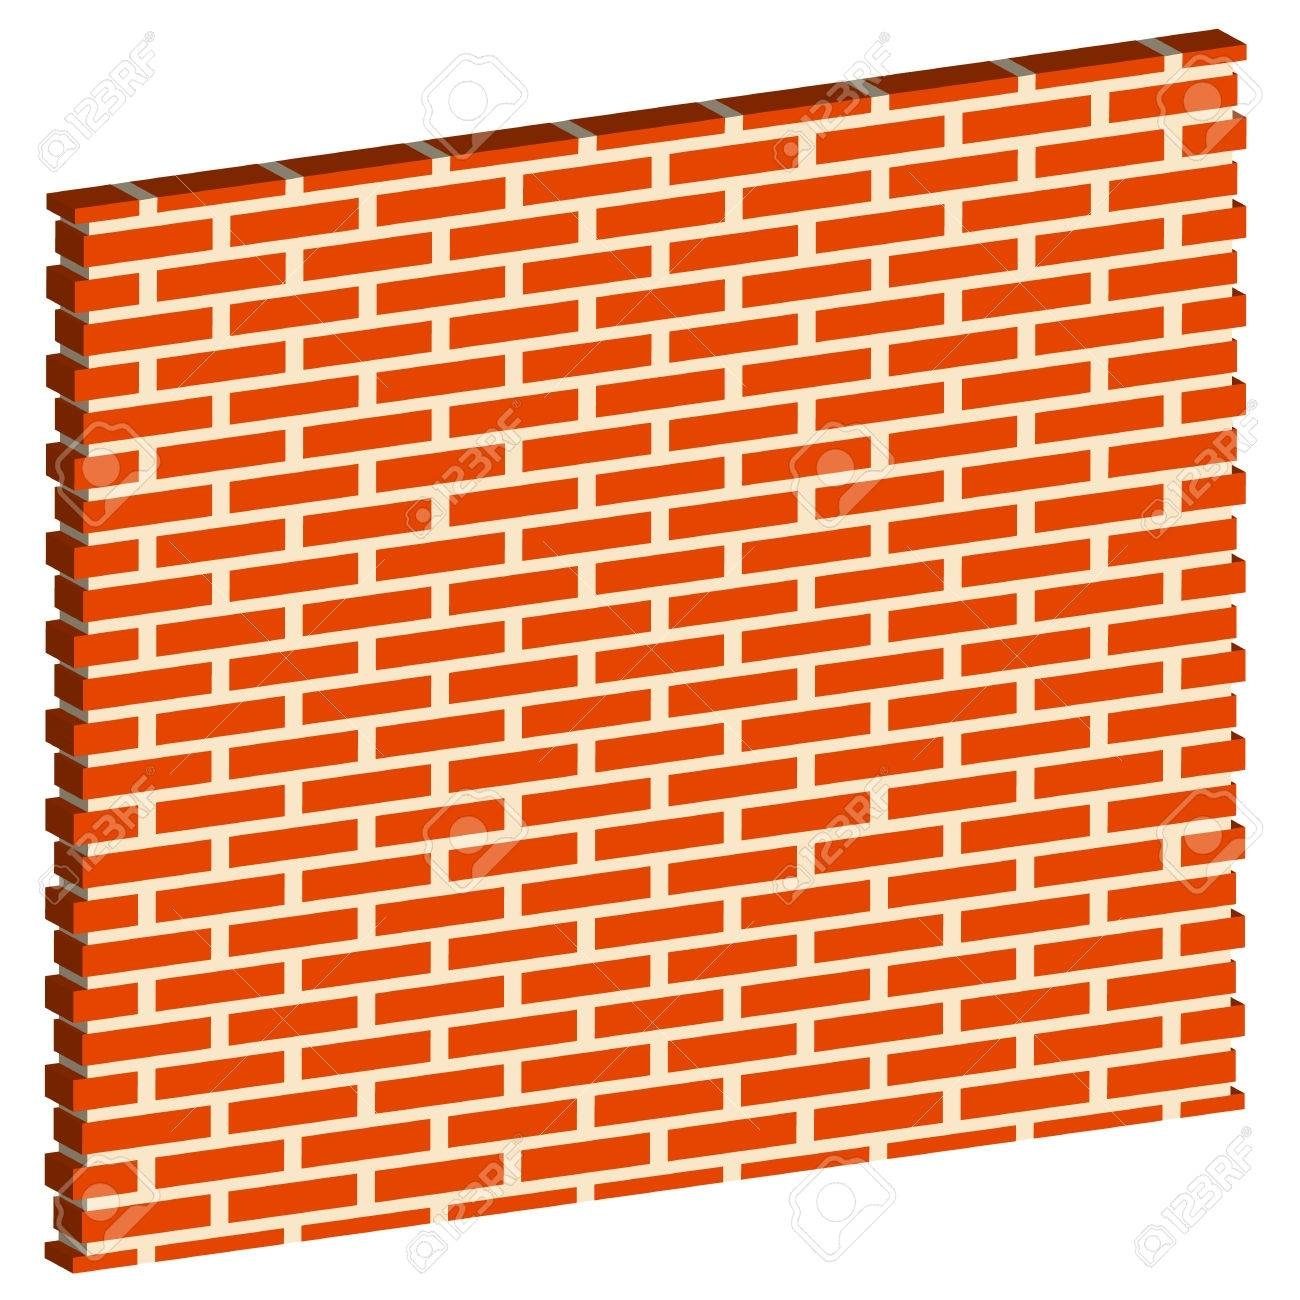 3d Clipart Brick Wall – Pencil And In Color 3d Clipart Brick Wall In 2018 3d Brick Wall Art (View 10 of 20)